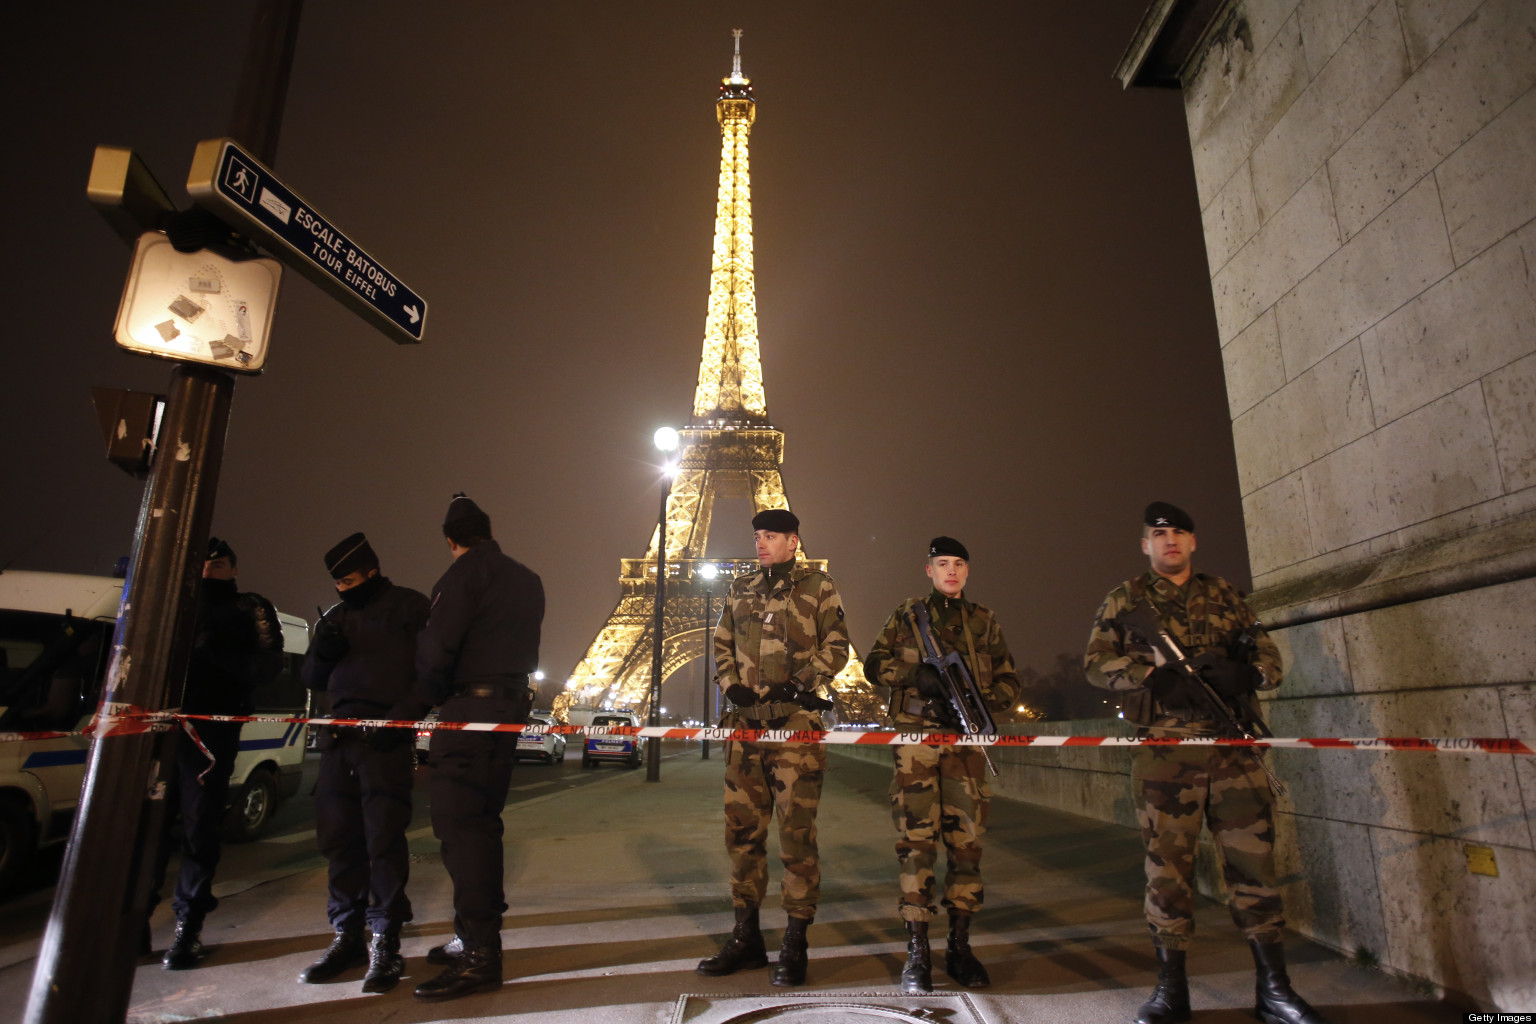 Eiffel Tower Bomb Threat Forces Evacuation